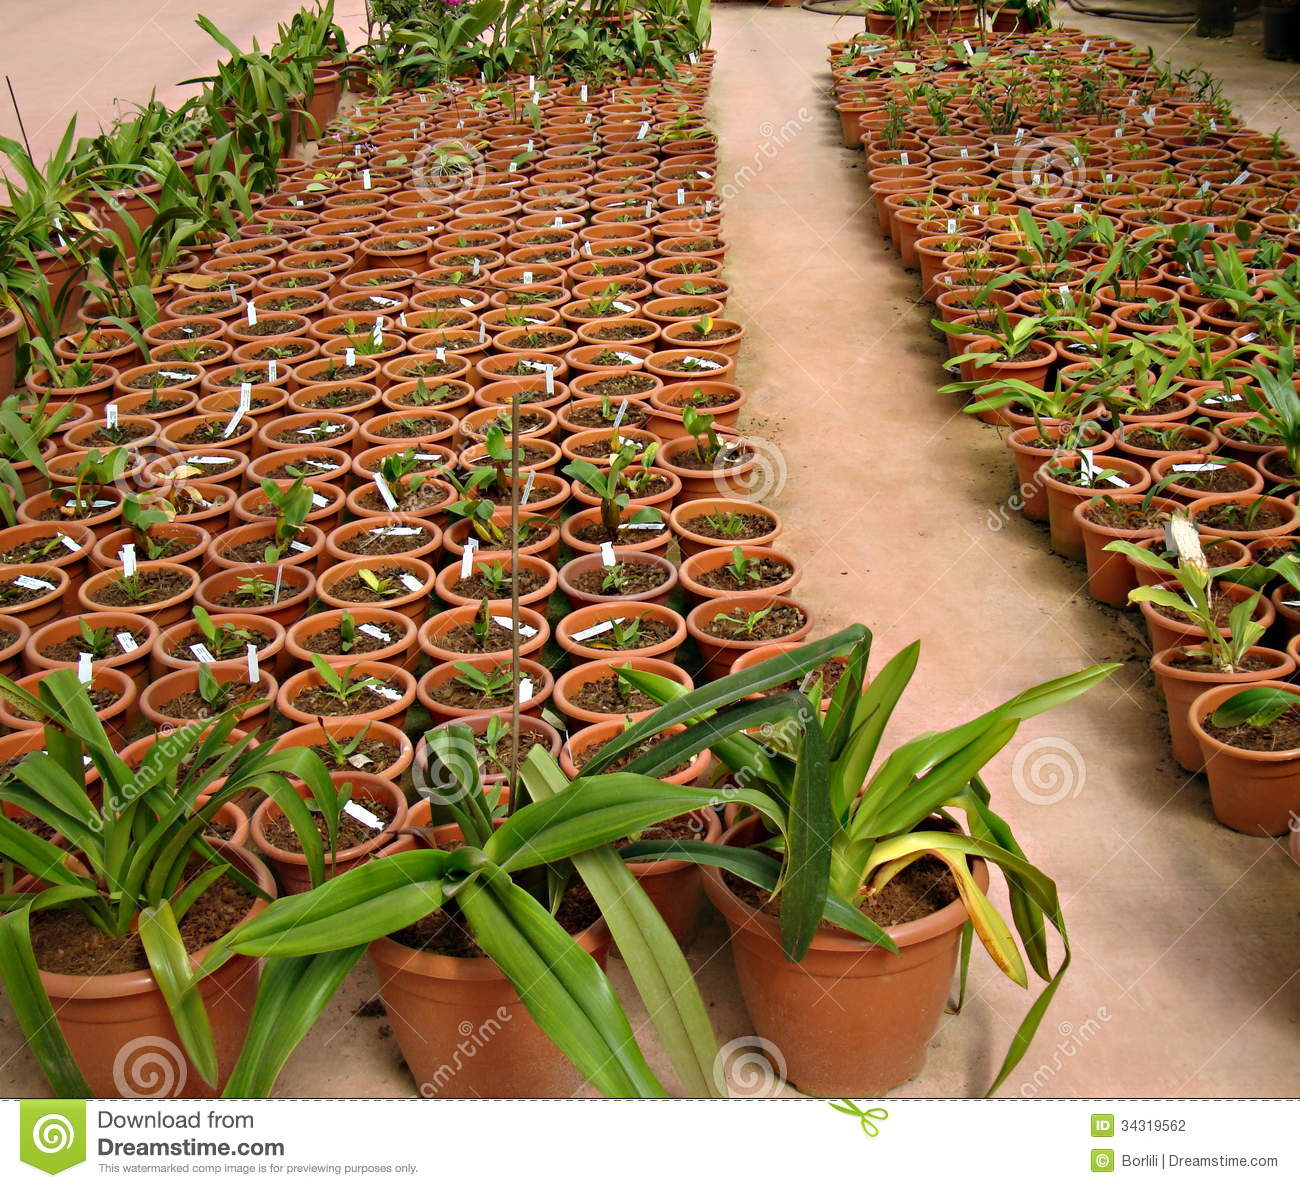 Plants For Tiny Pots: Sale Of Small Plants In Pots In A Green House Stock